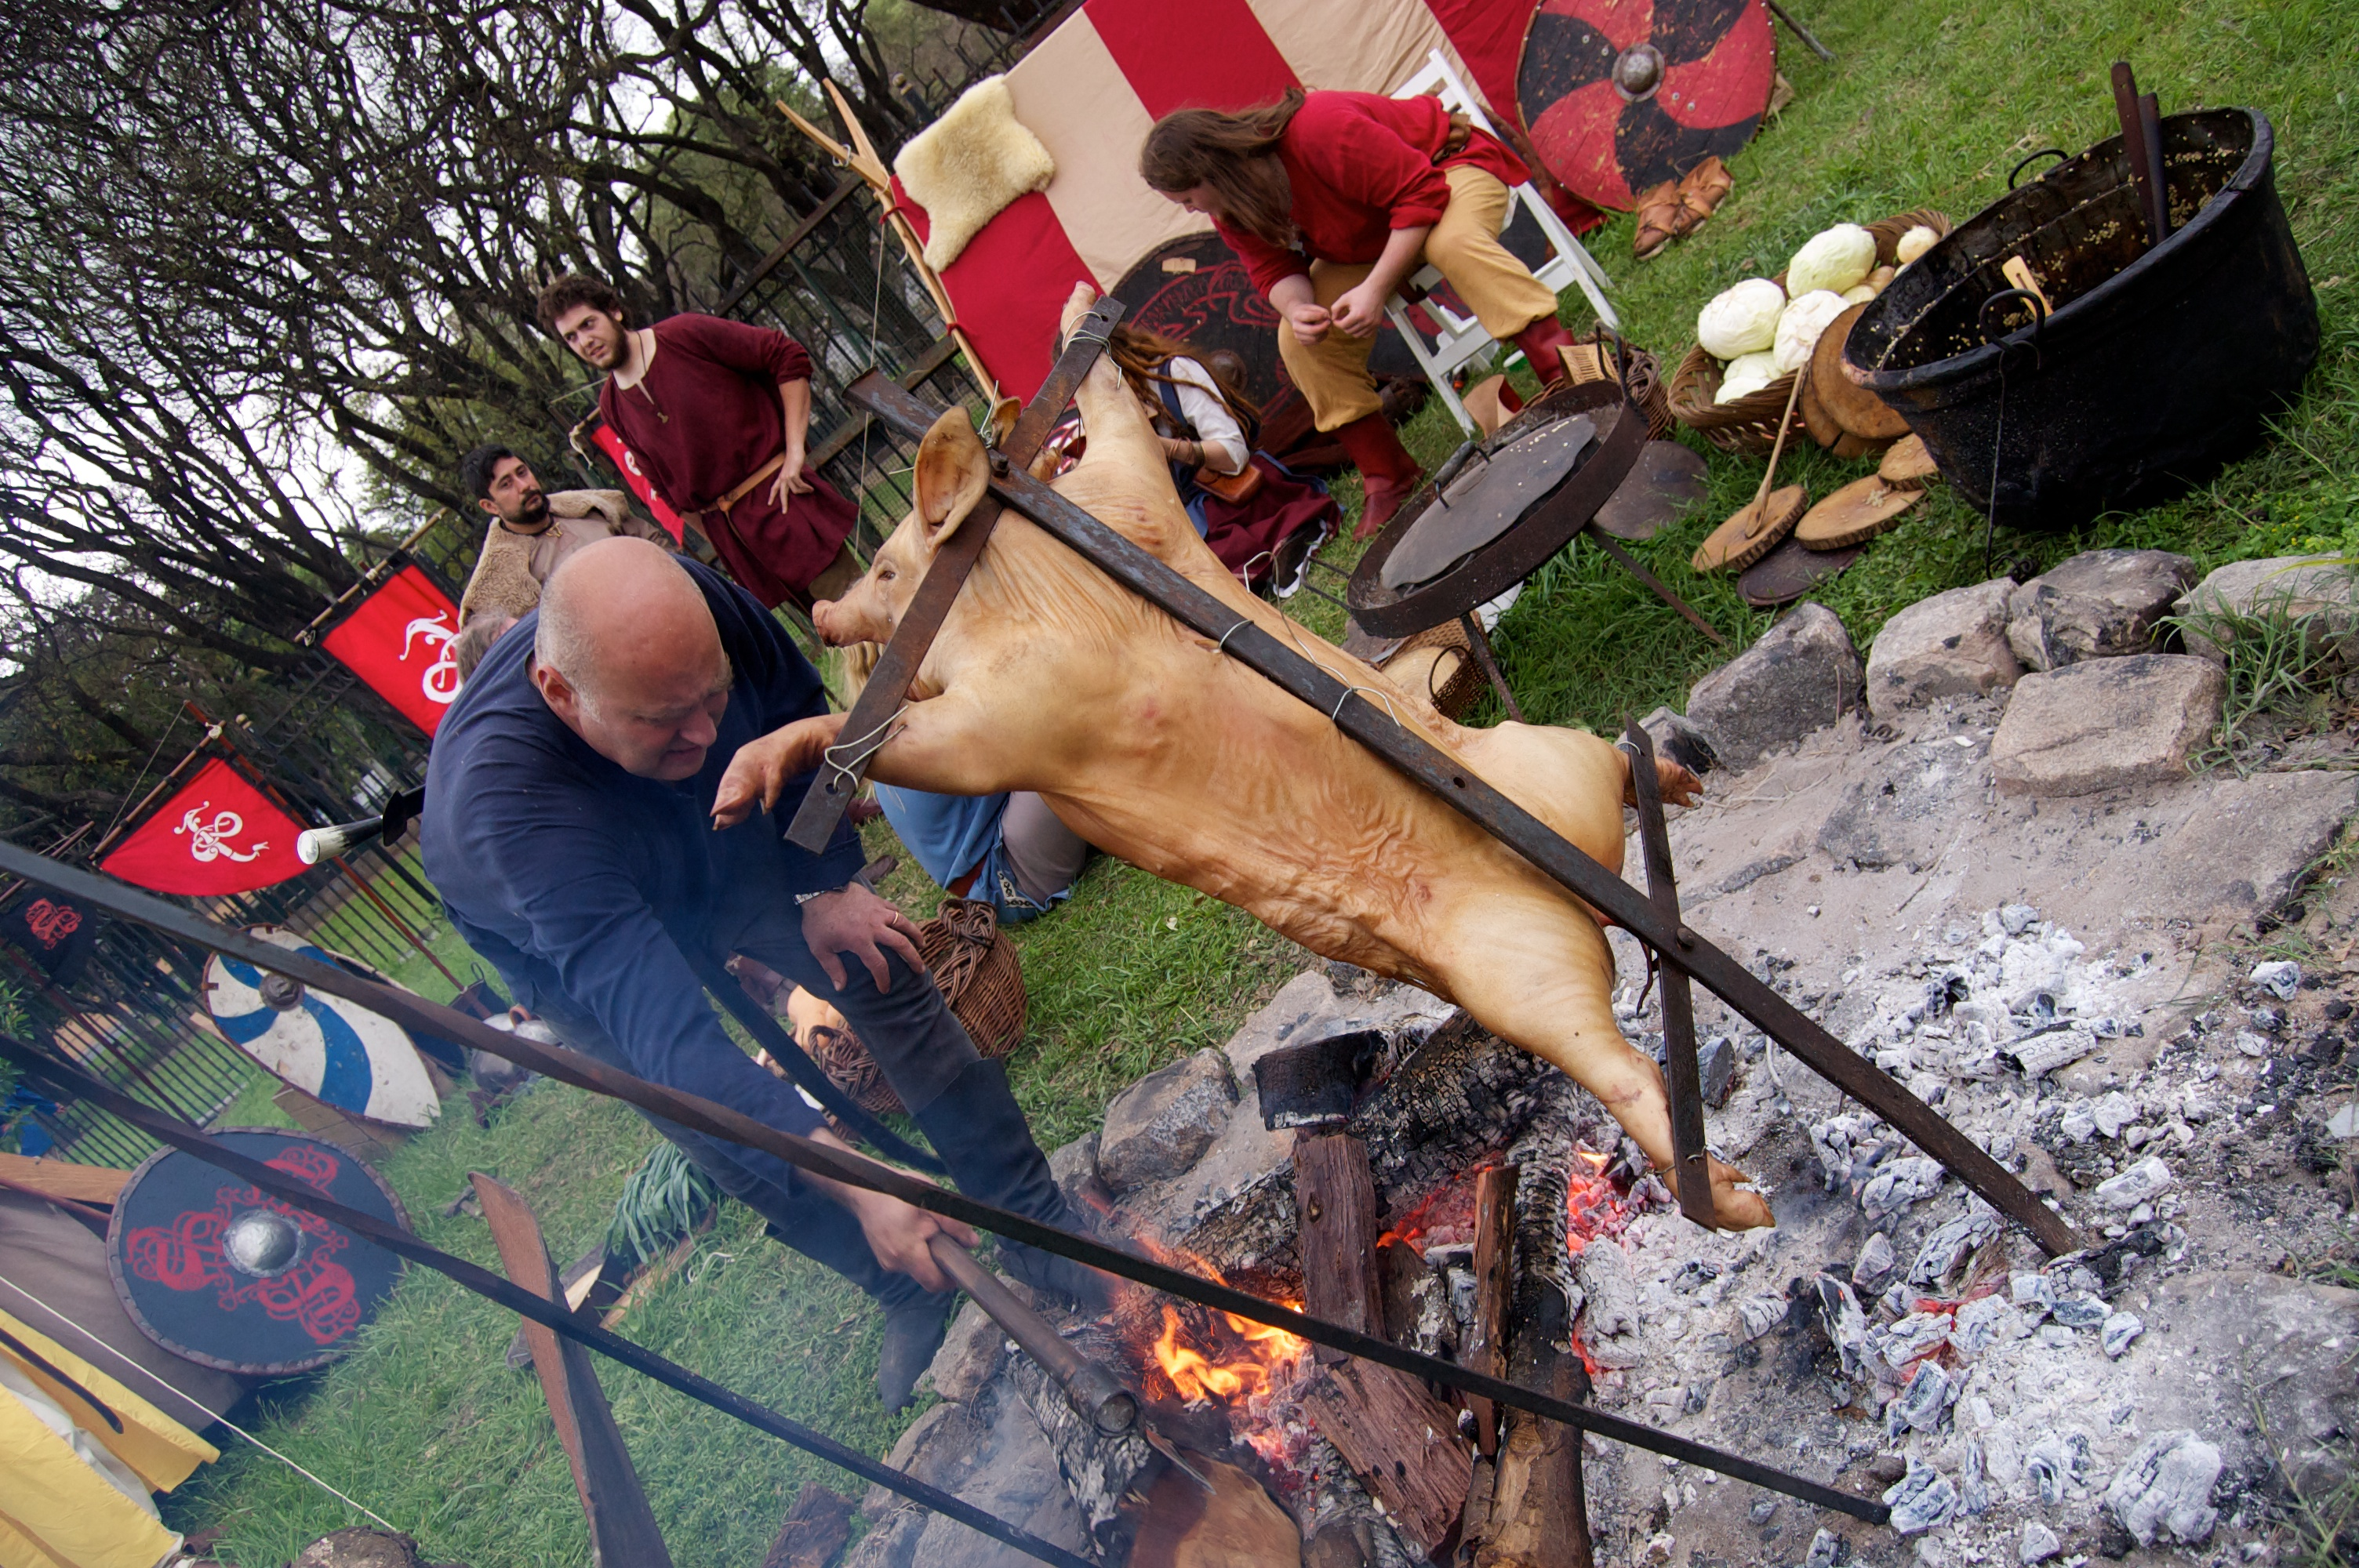 A pig on cross slowly cooks over the open pit fire at the Medieval Festival.